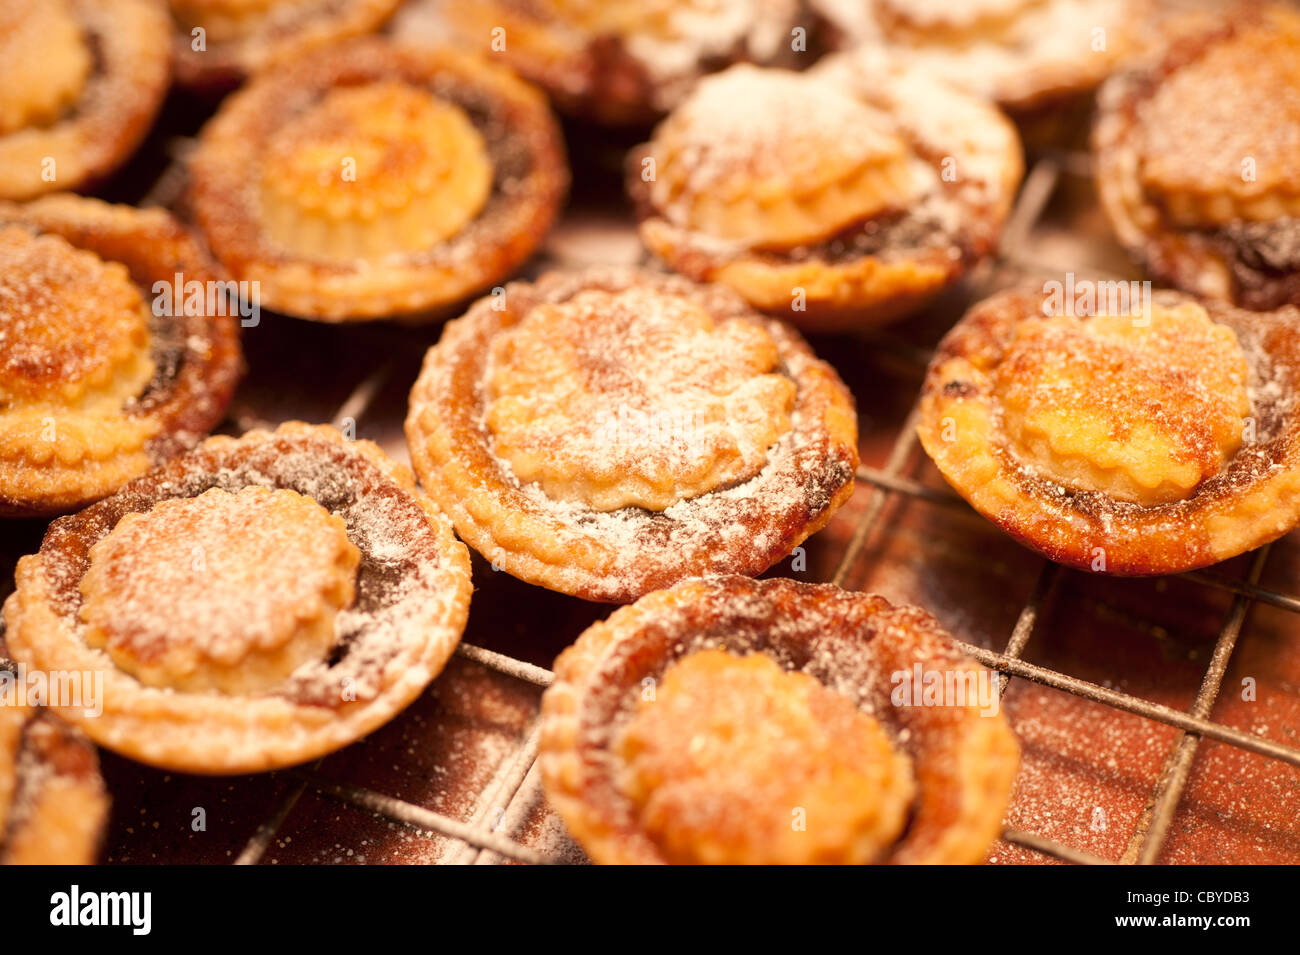 freshly baked Home made mice pies cooling on a rack, UK - Stock Image